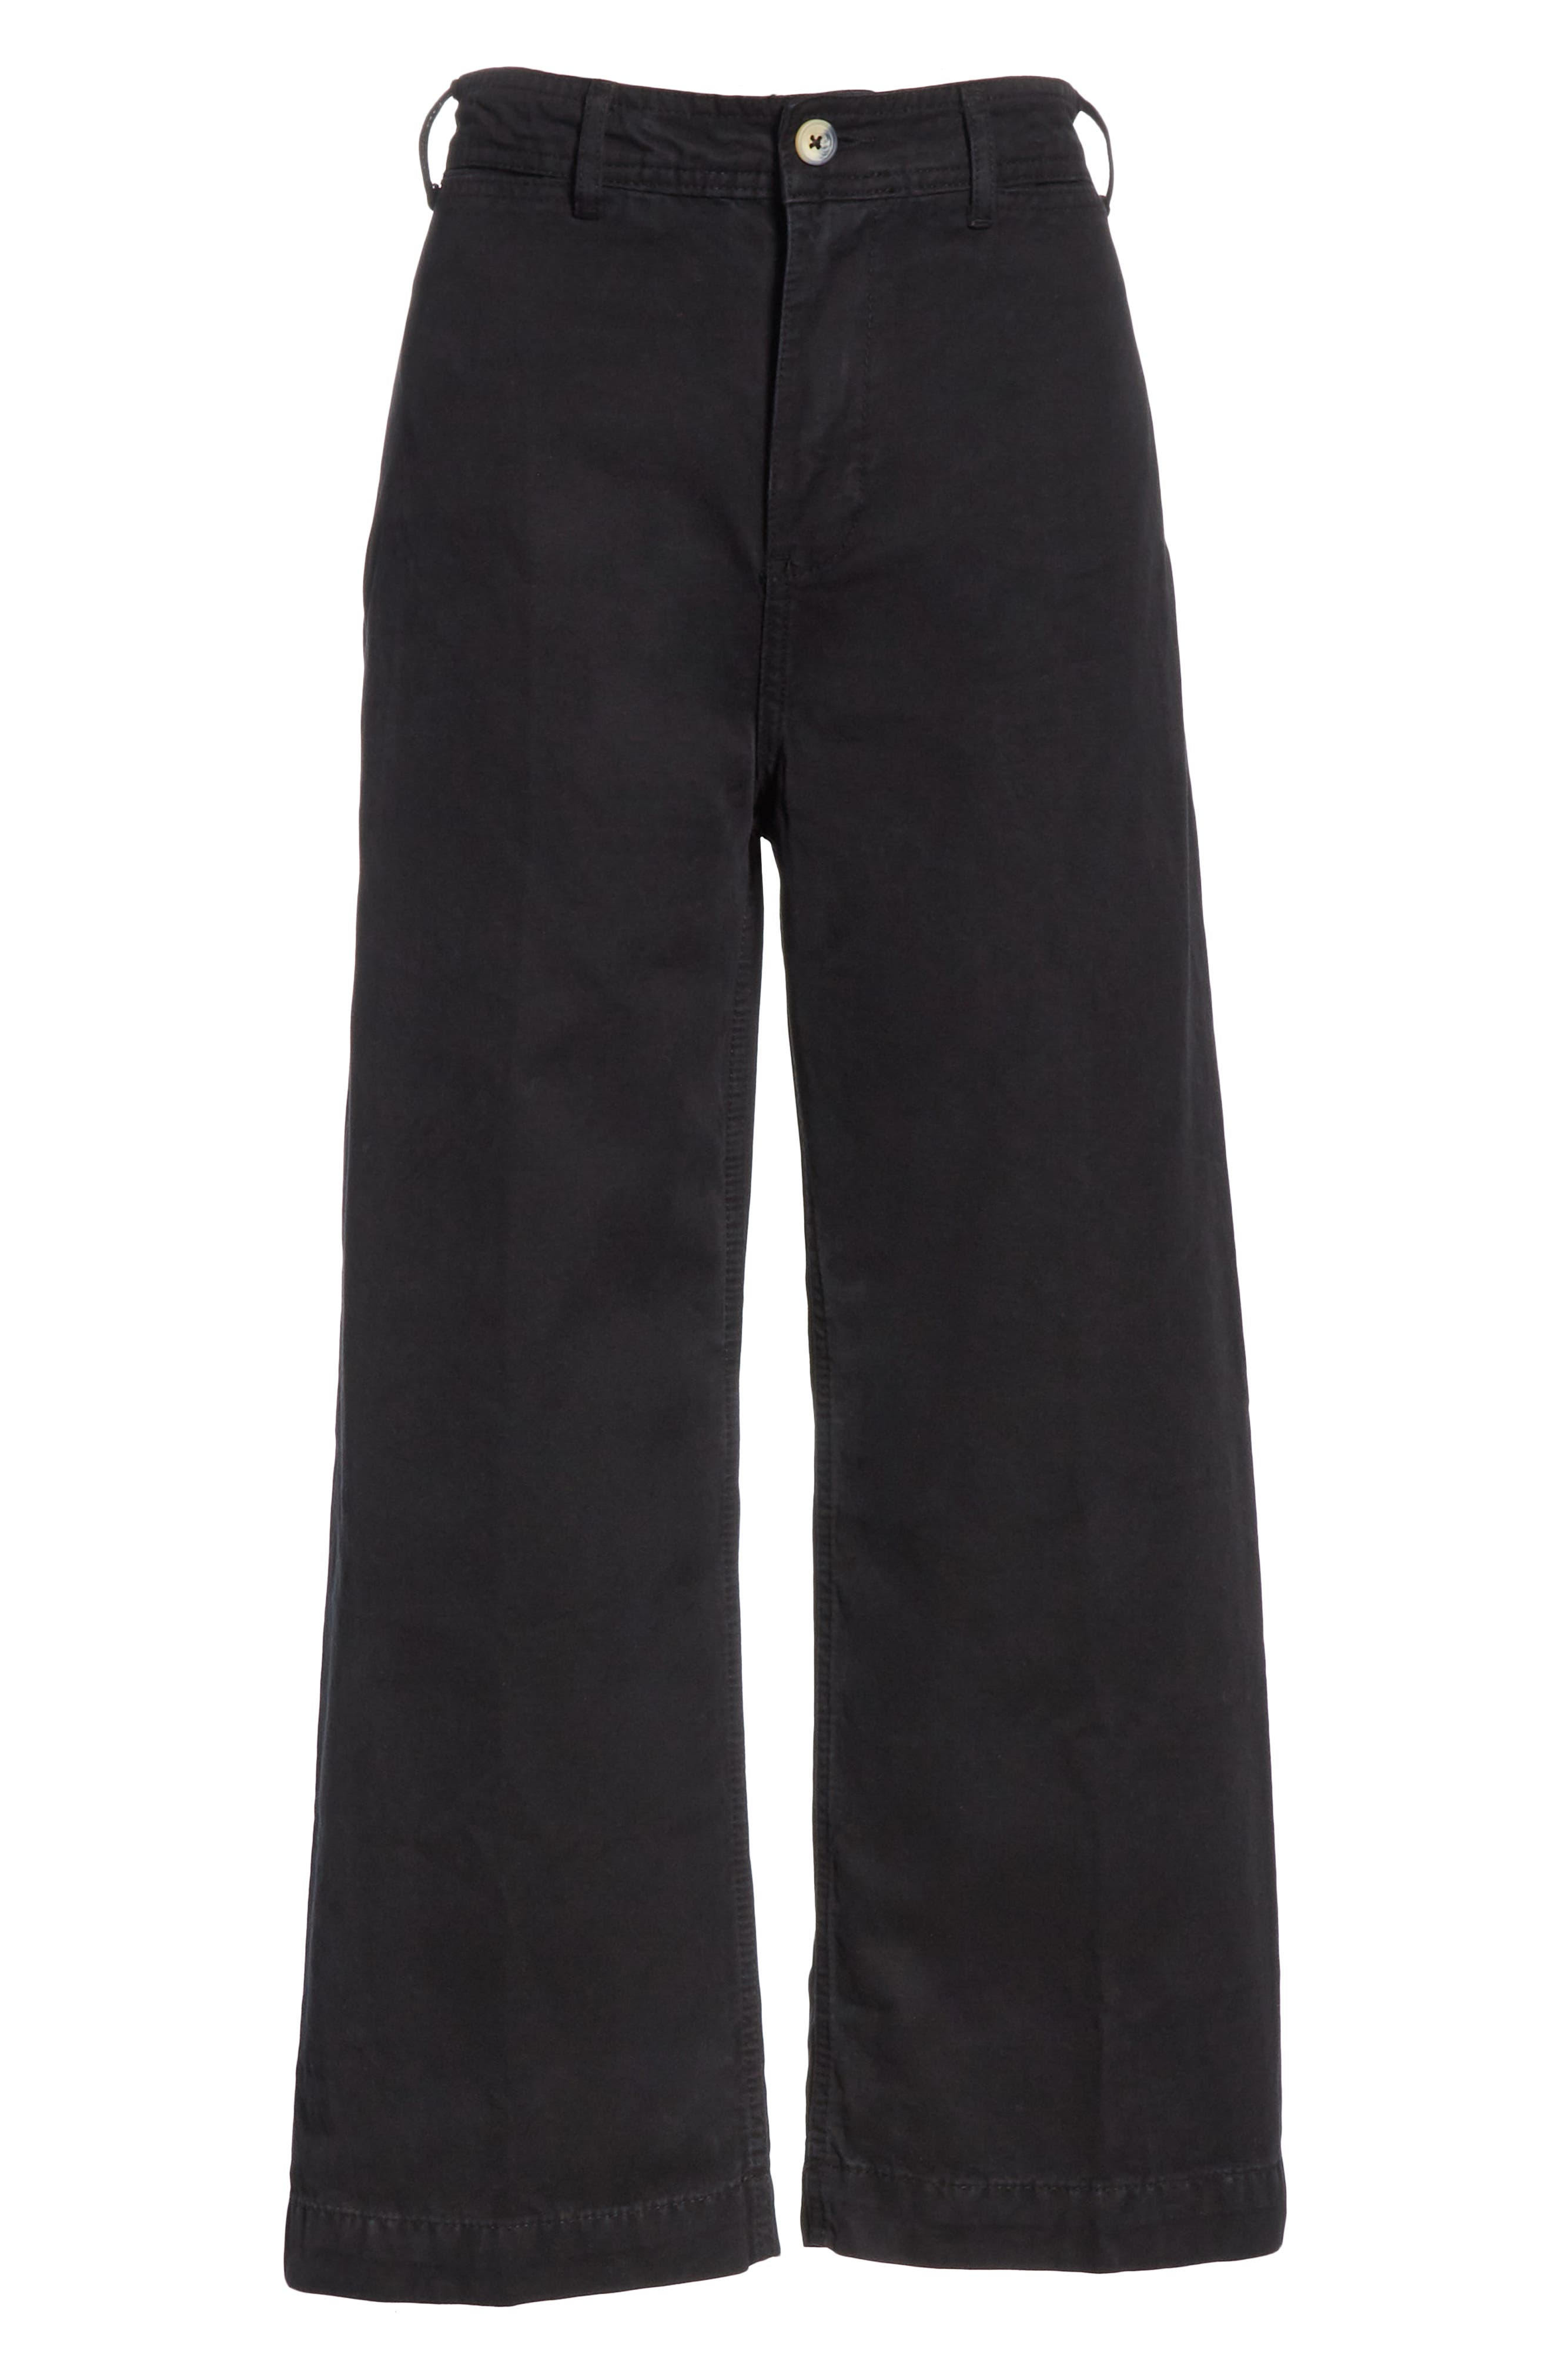 FREE PEOPLE, We the Free by Free People Patti Crop Cotton Pants, Alternate thumbnail 7, color, 001